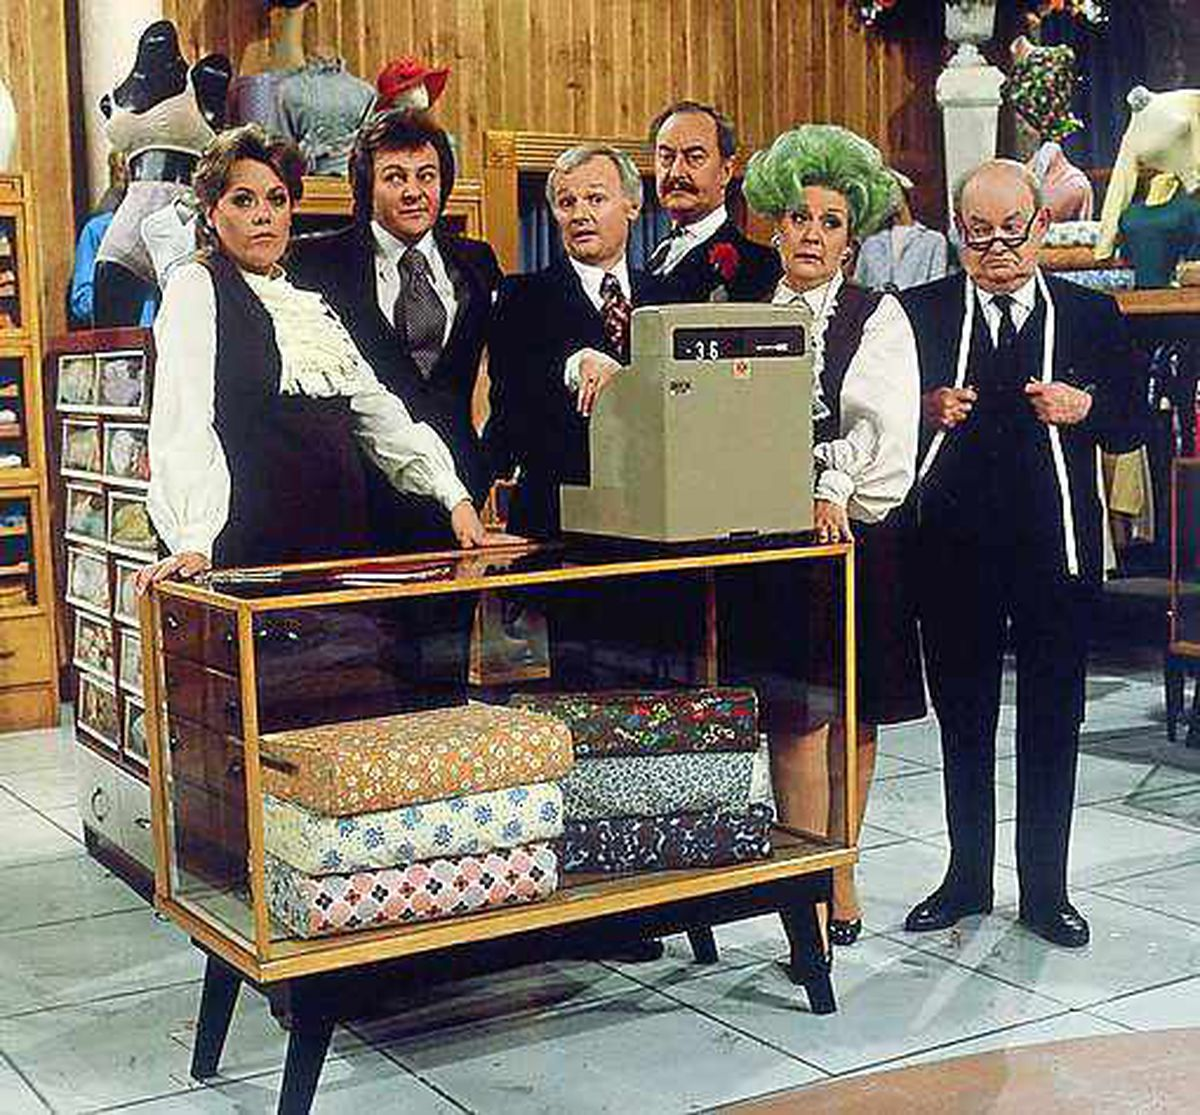 Are You Being Served? is set for a remake